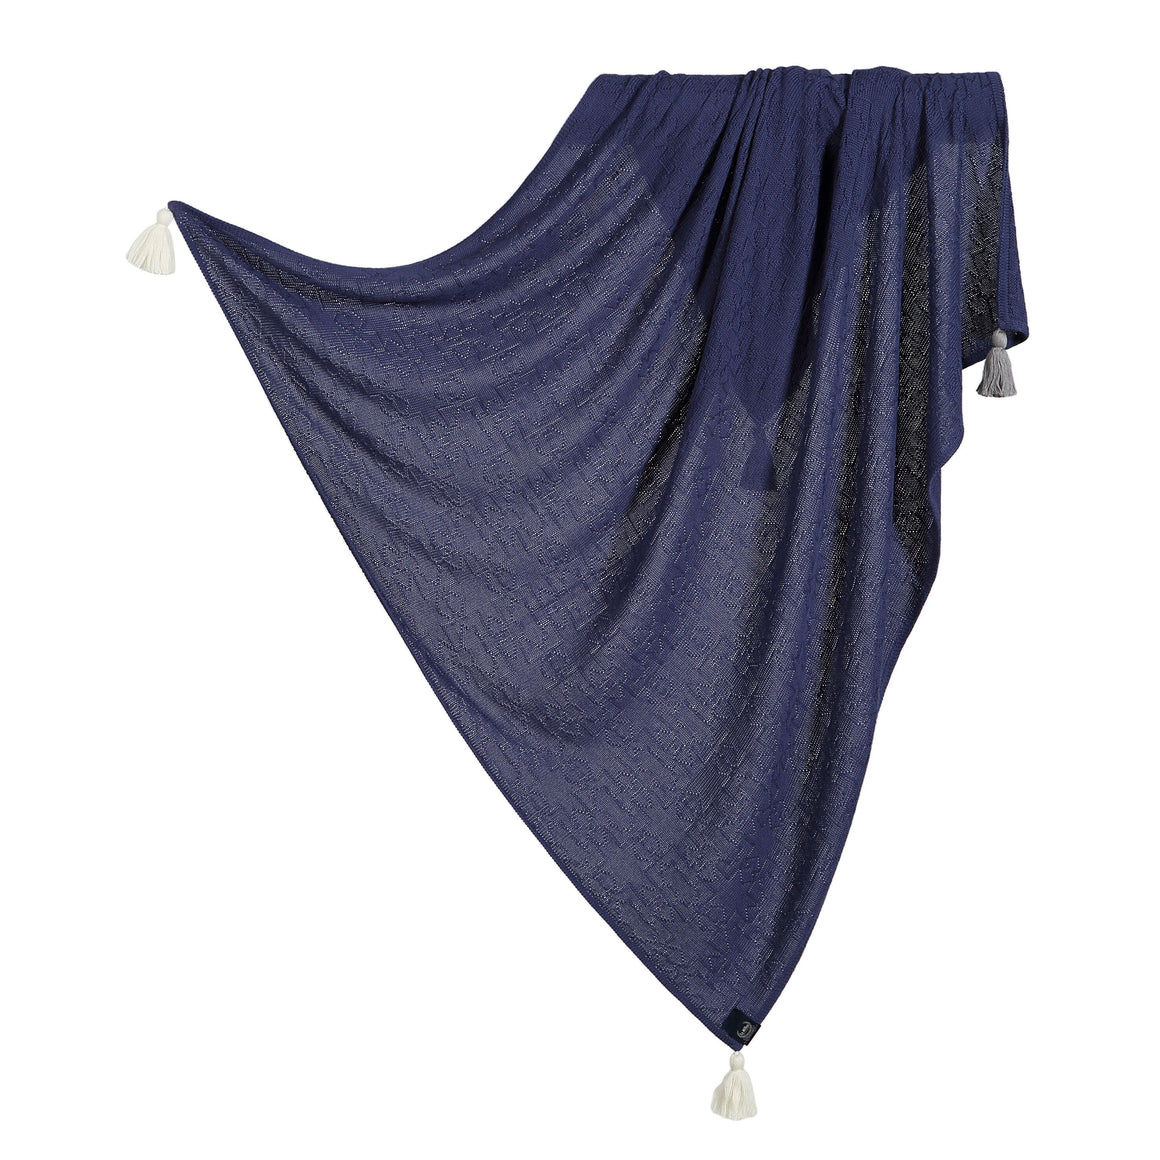 BAMBOO TENDER BLANKET - Midnight Sky